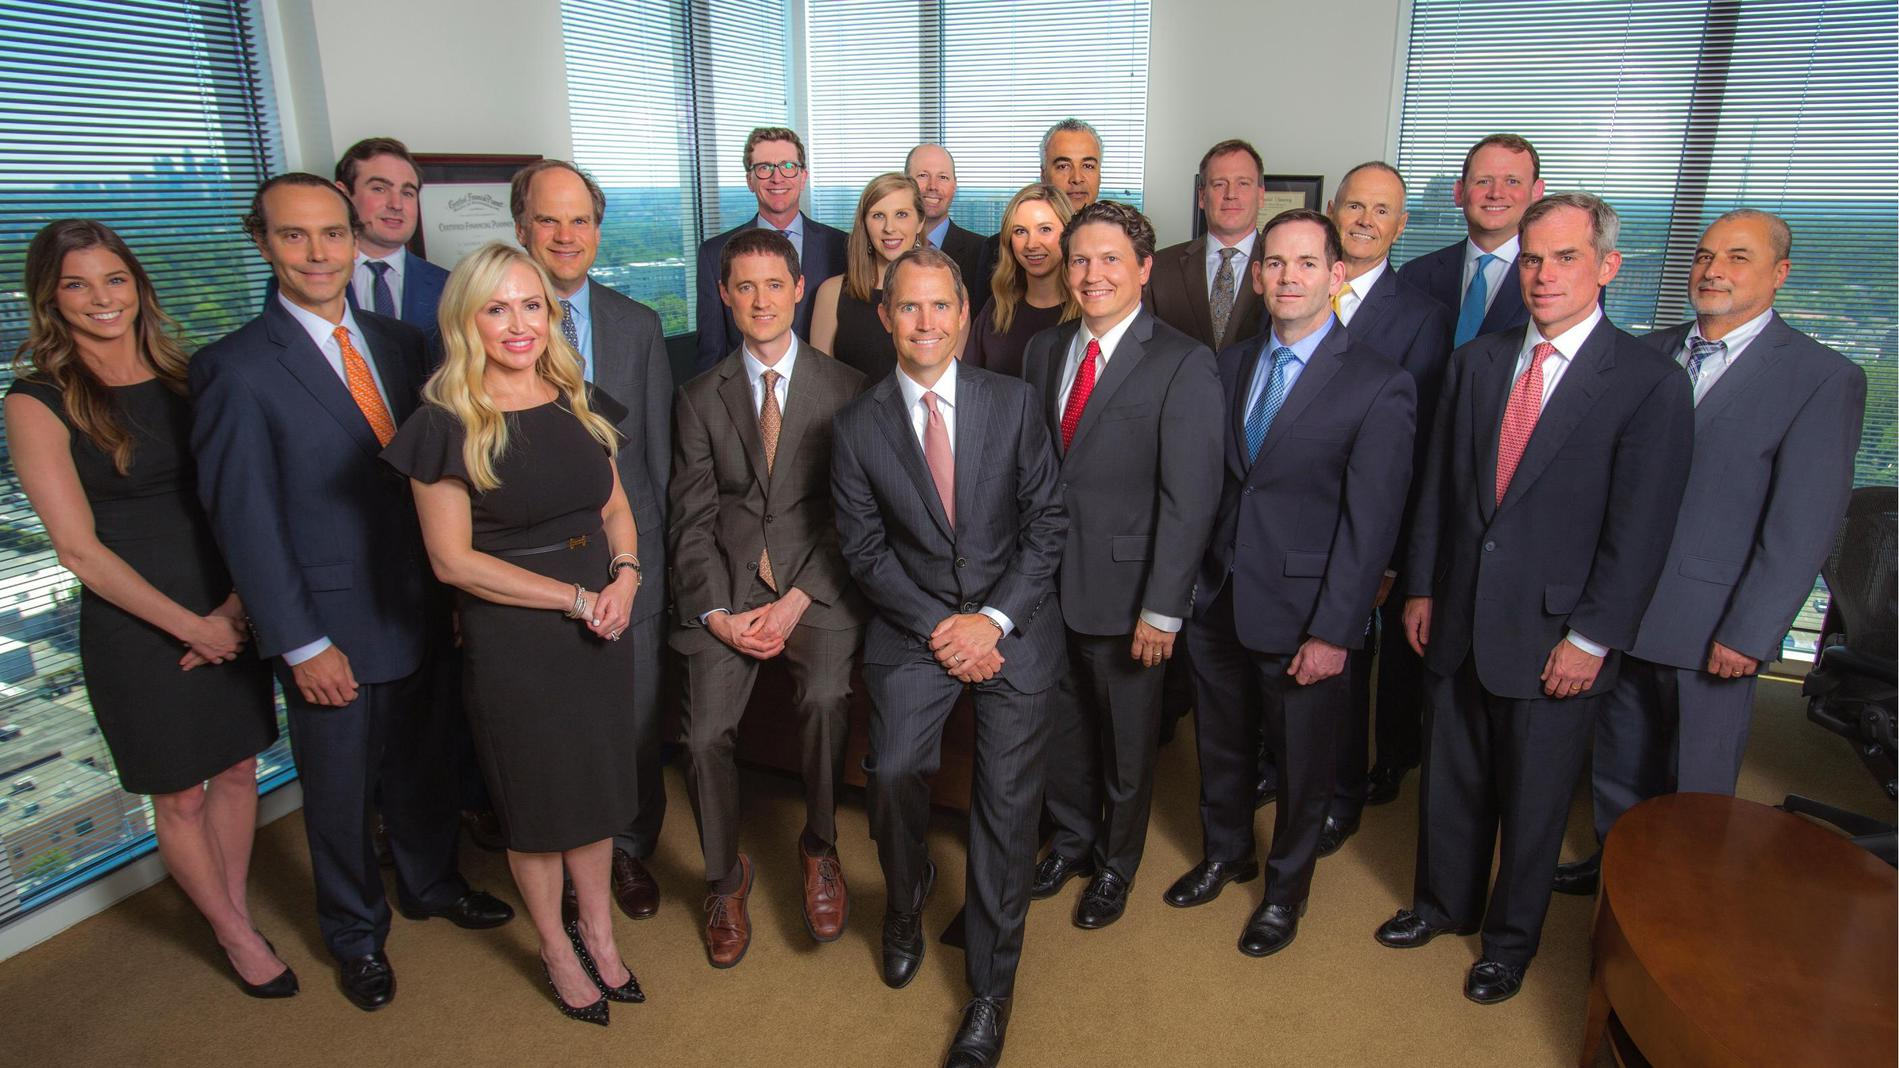 Photo of The Peachtree Group - Morgan Stanley